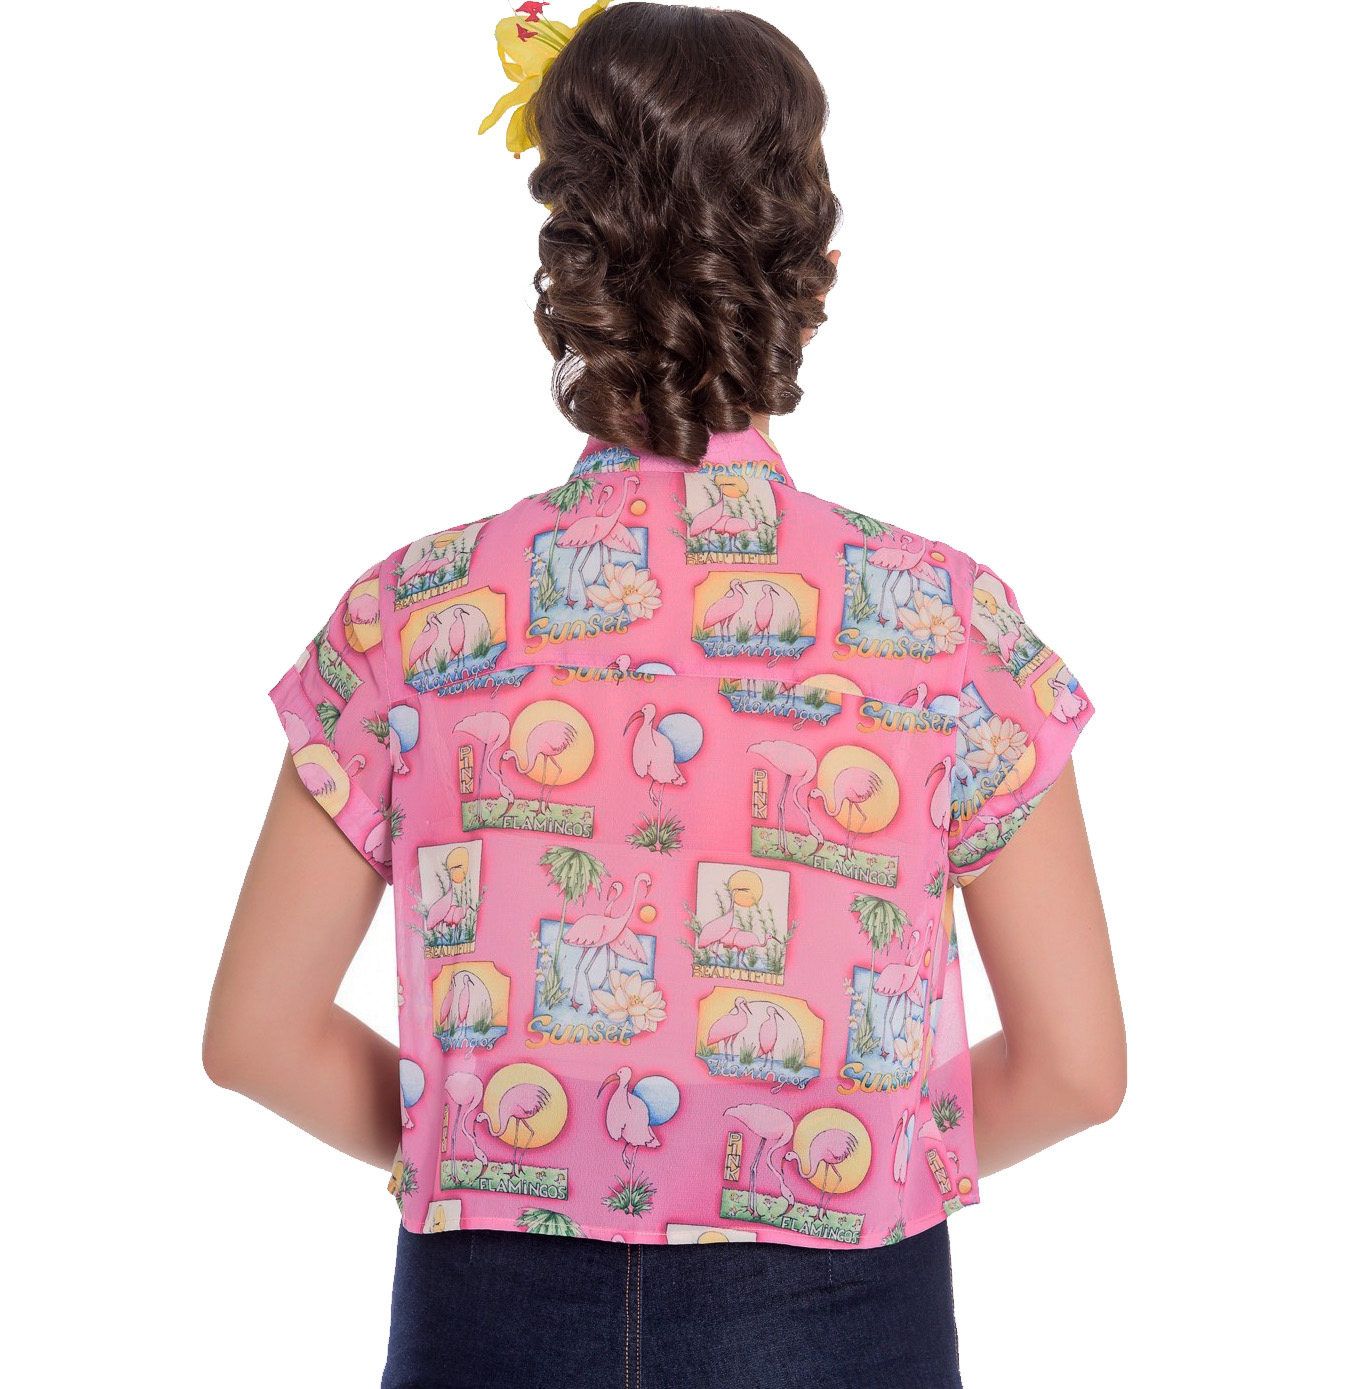 thumbnail 12 - Hell Bunny 50s Retro Top Pink Flamingo MAXINE Cropped Blouse Shirt All Sizes